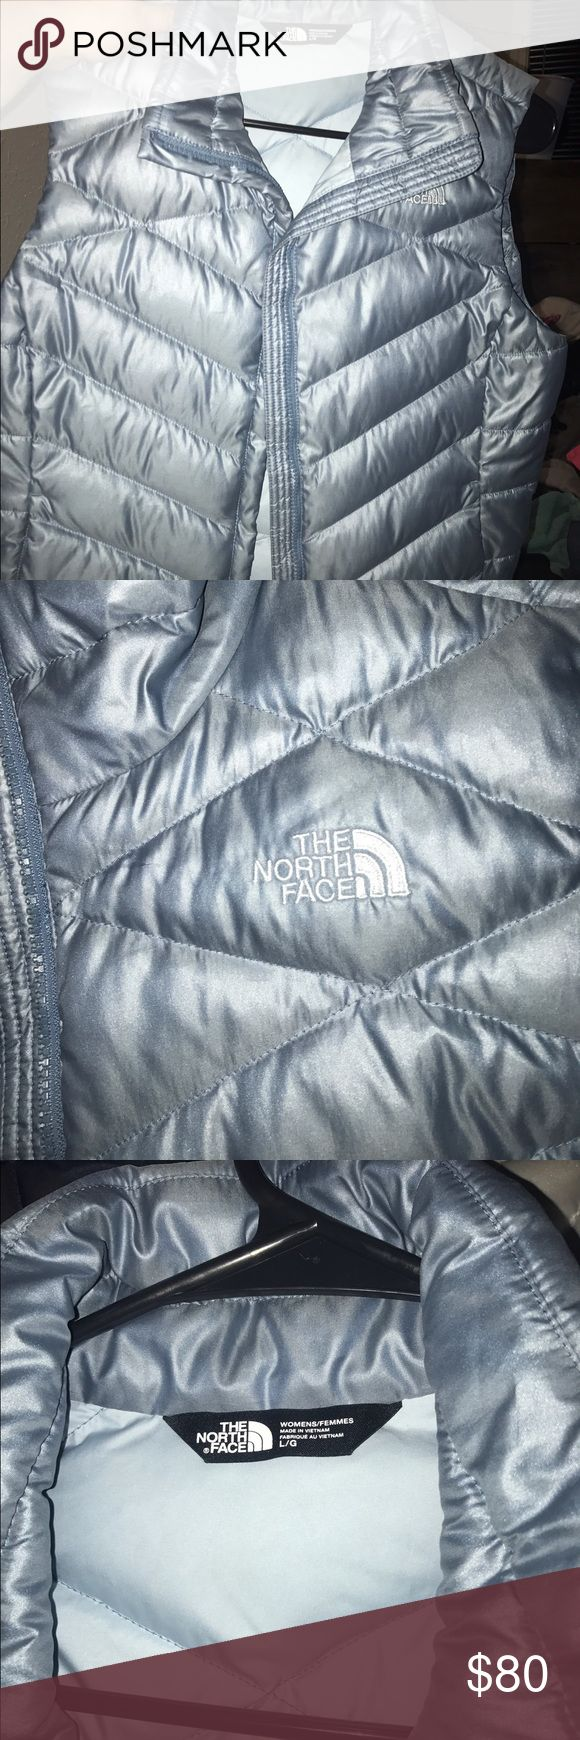 North face vest grey/blue vest, excellent condition North Face Jackets & Coats Vests